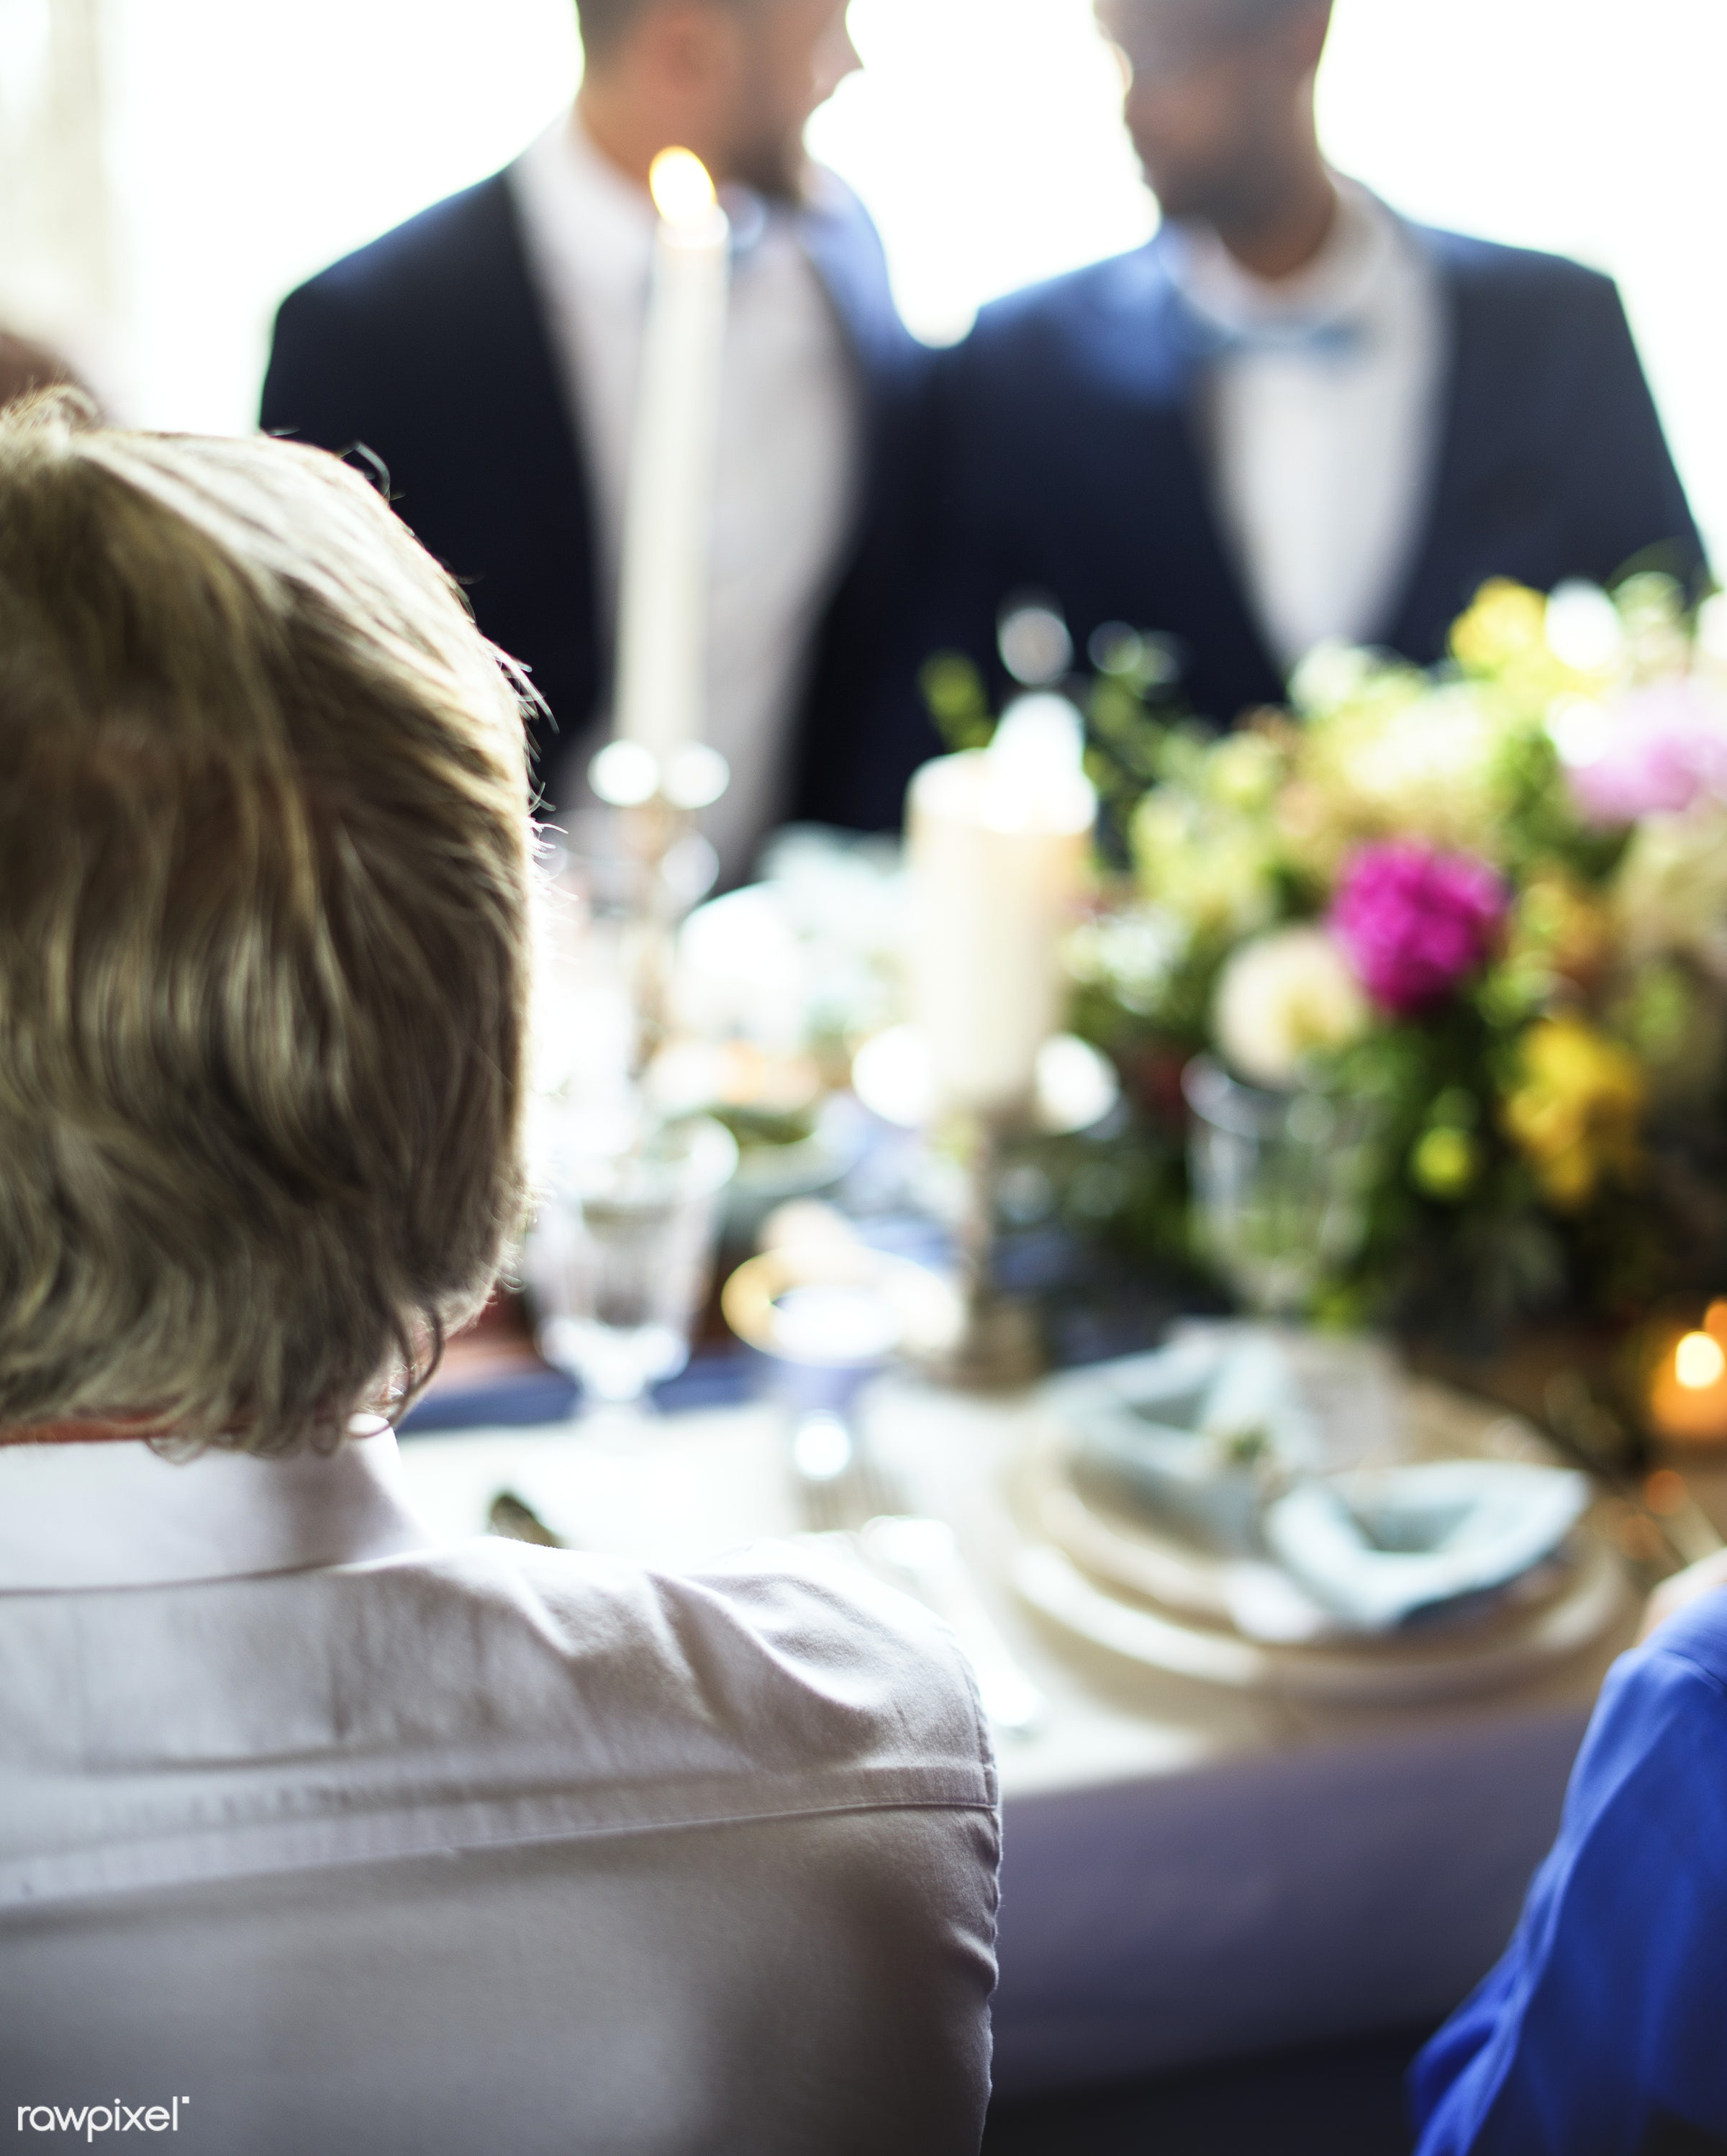 diverse, guests, occasion, people, together, friends, dining table, event, gathering, banquet, flowers, closeup, gay couple...